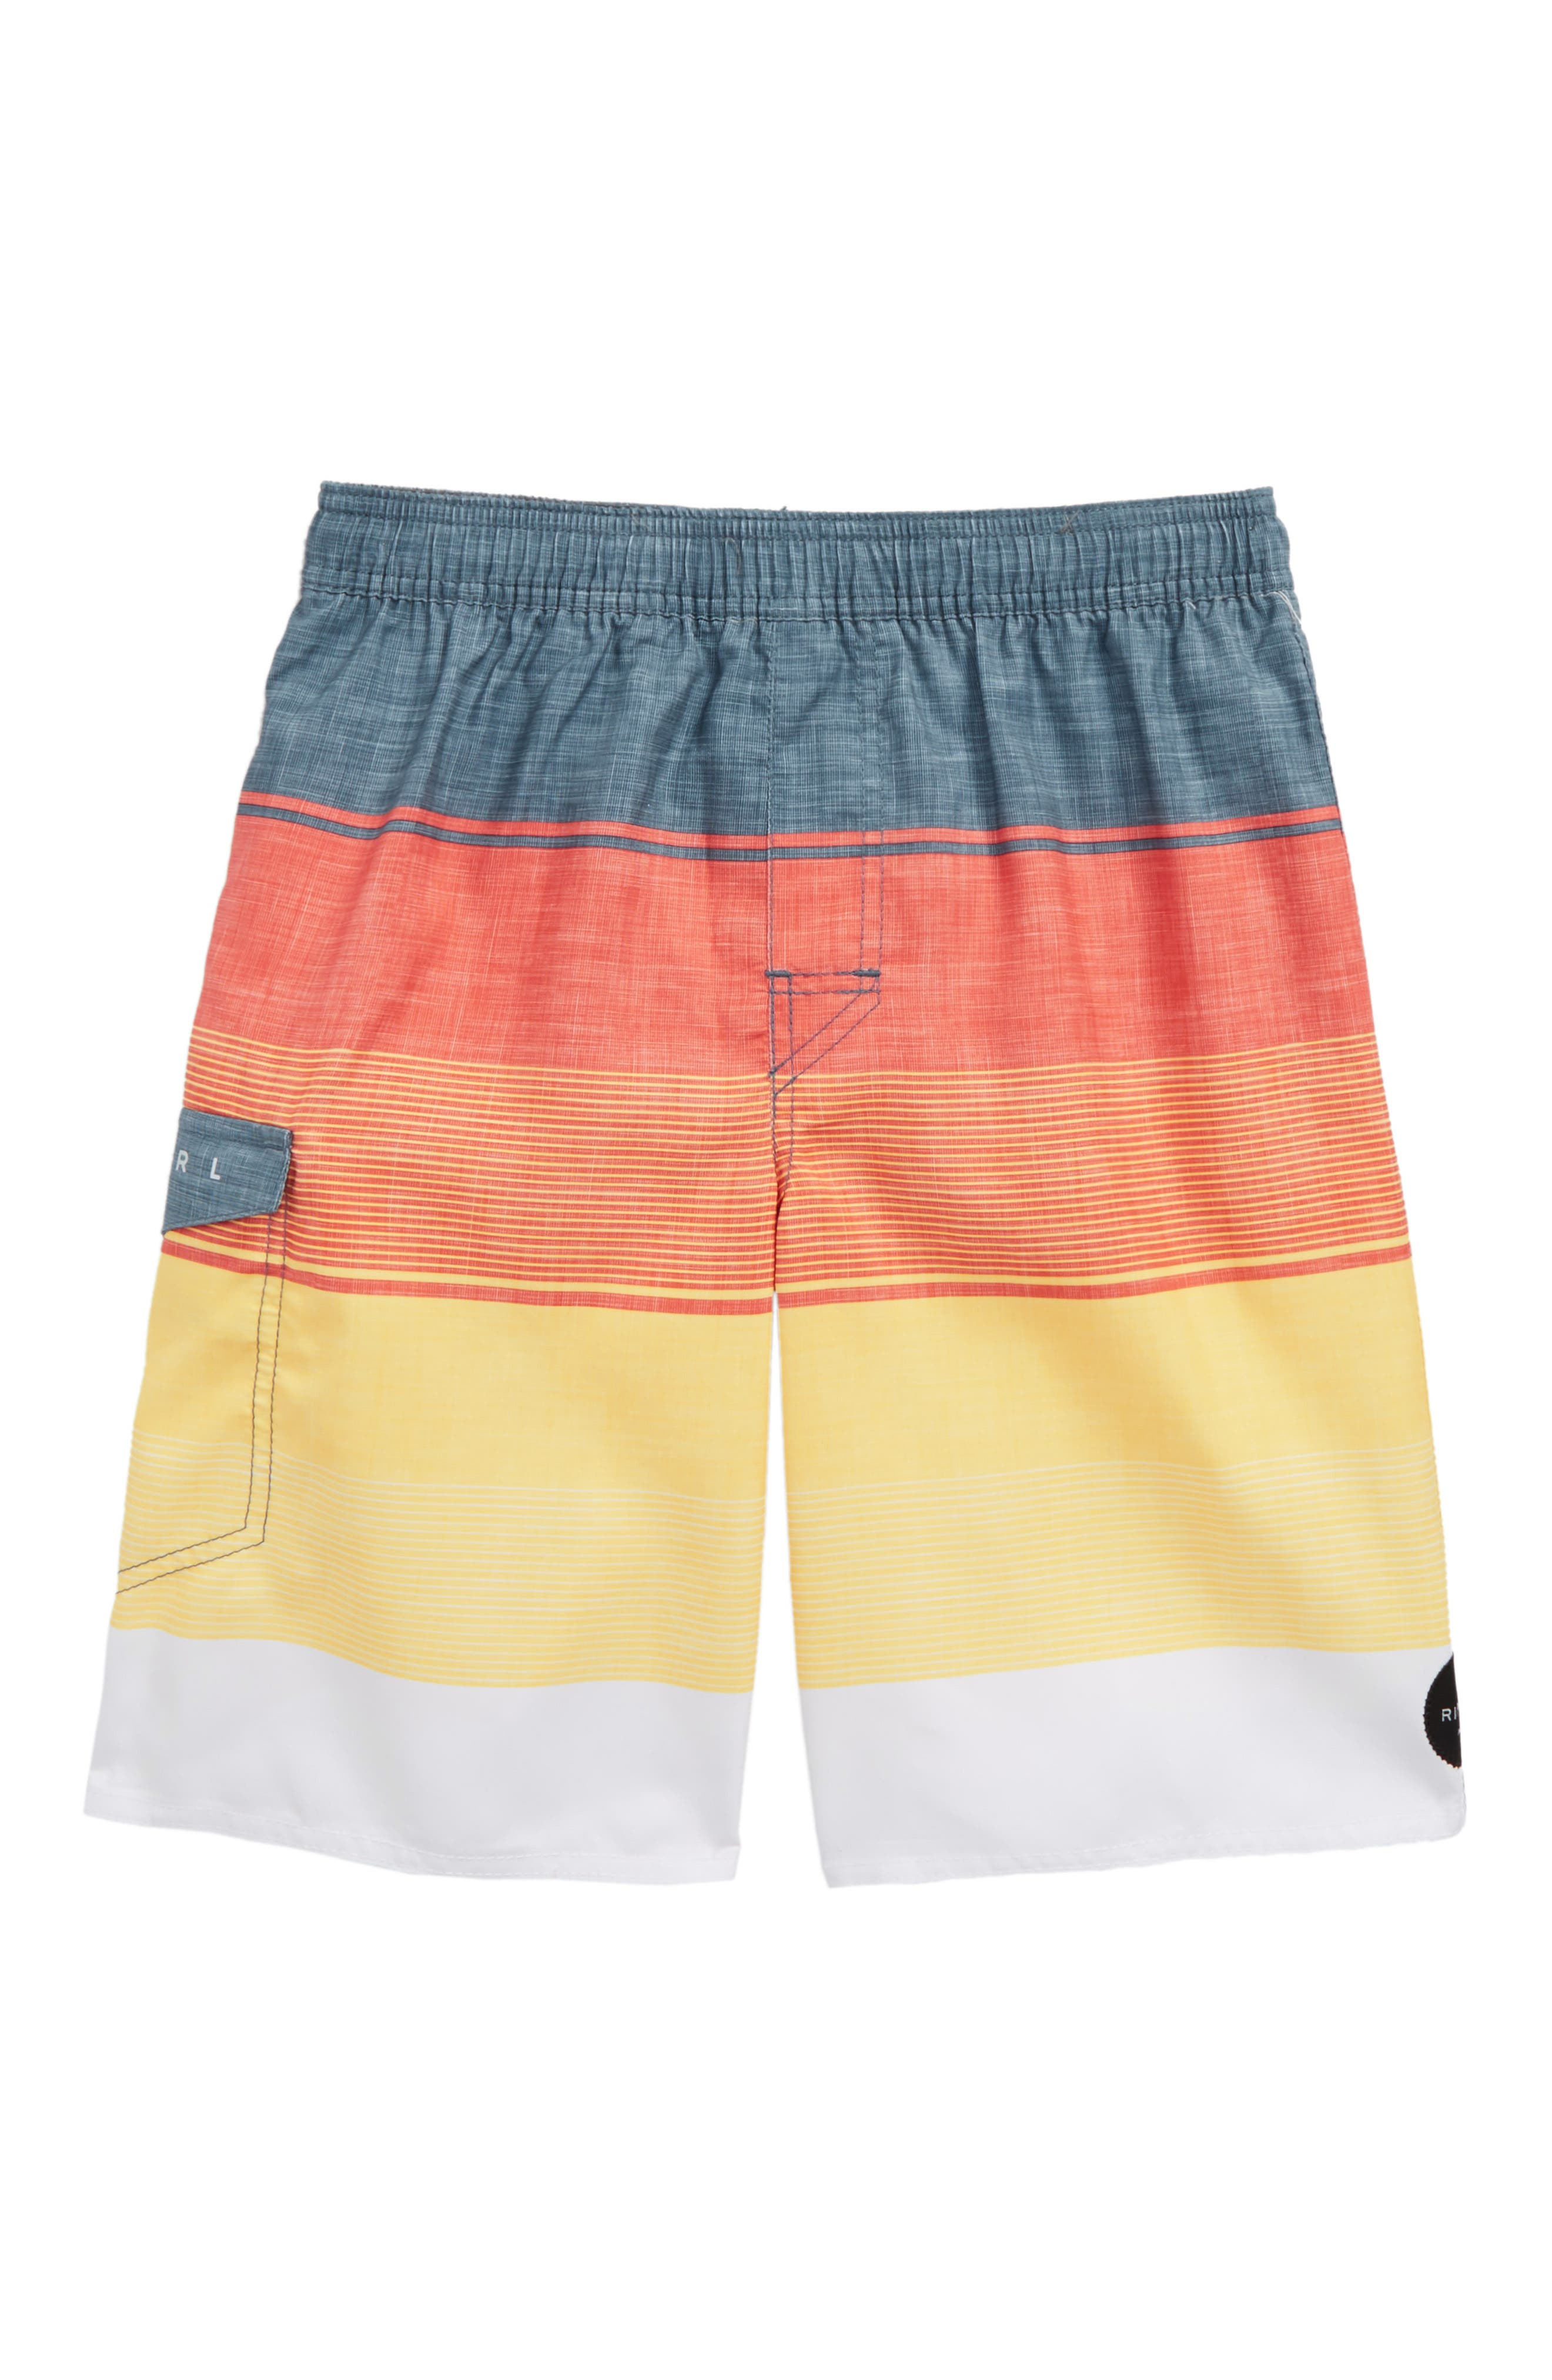 Good Times Volley Shorts,                         Main,                         color, Orange